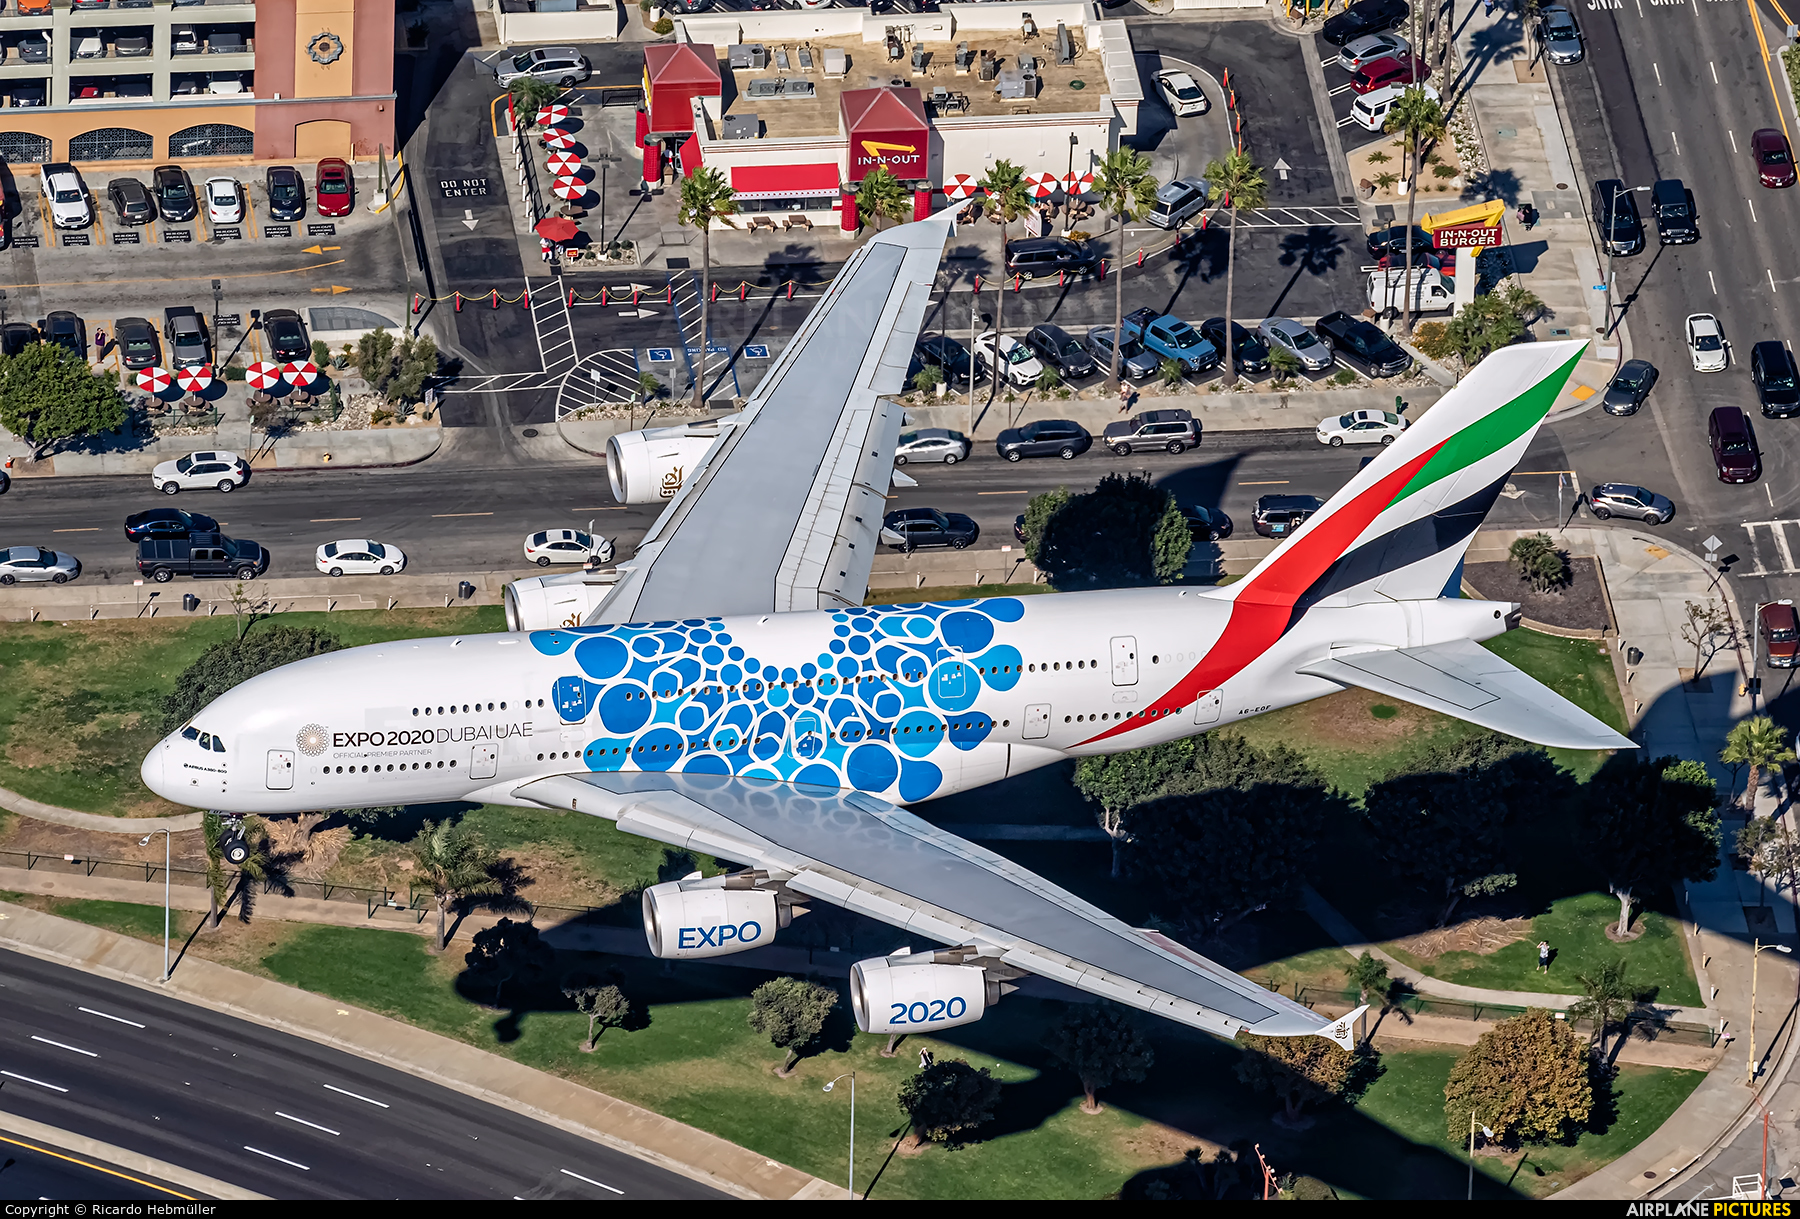 Emirates Airlines A6-EOF aircraft at Los Angeles Intl